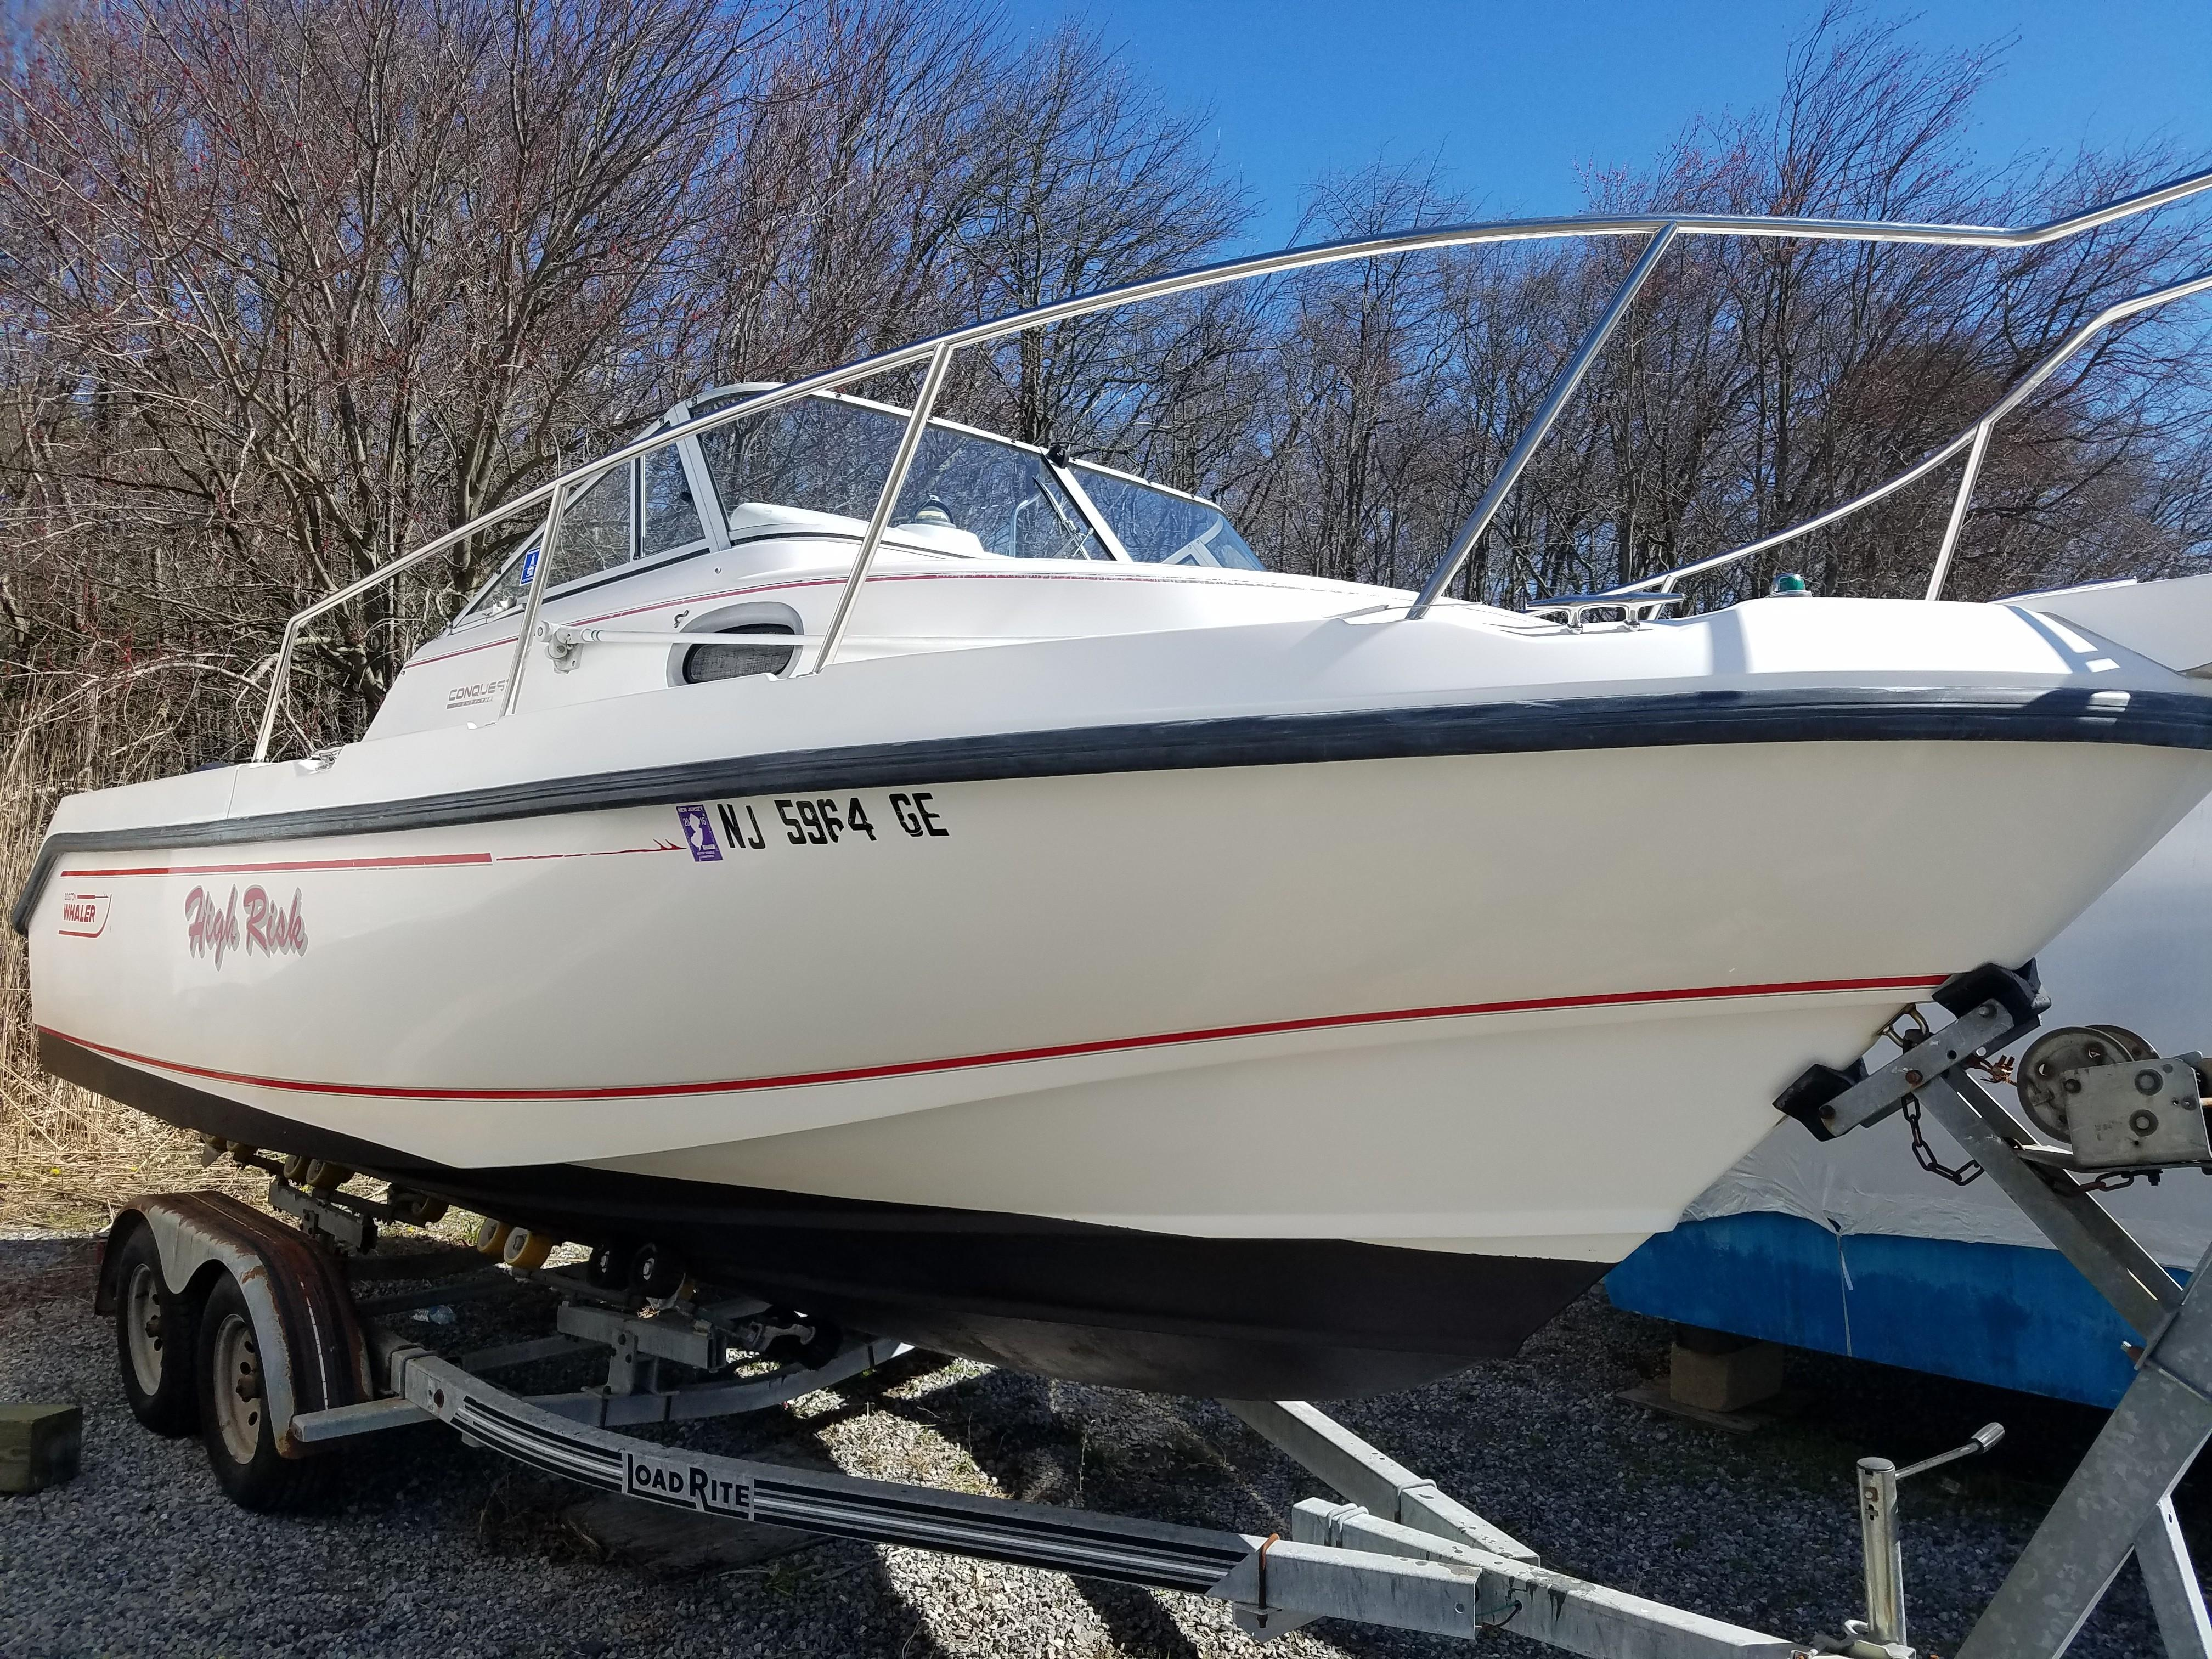 6172555_20170408100555525_1_XLARGE&w=4032&h=3024&t=1491675085000 1997 boston whaler 23 conquest power boat for sale www boston whaler wiring harness at nearapp.co